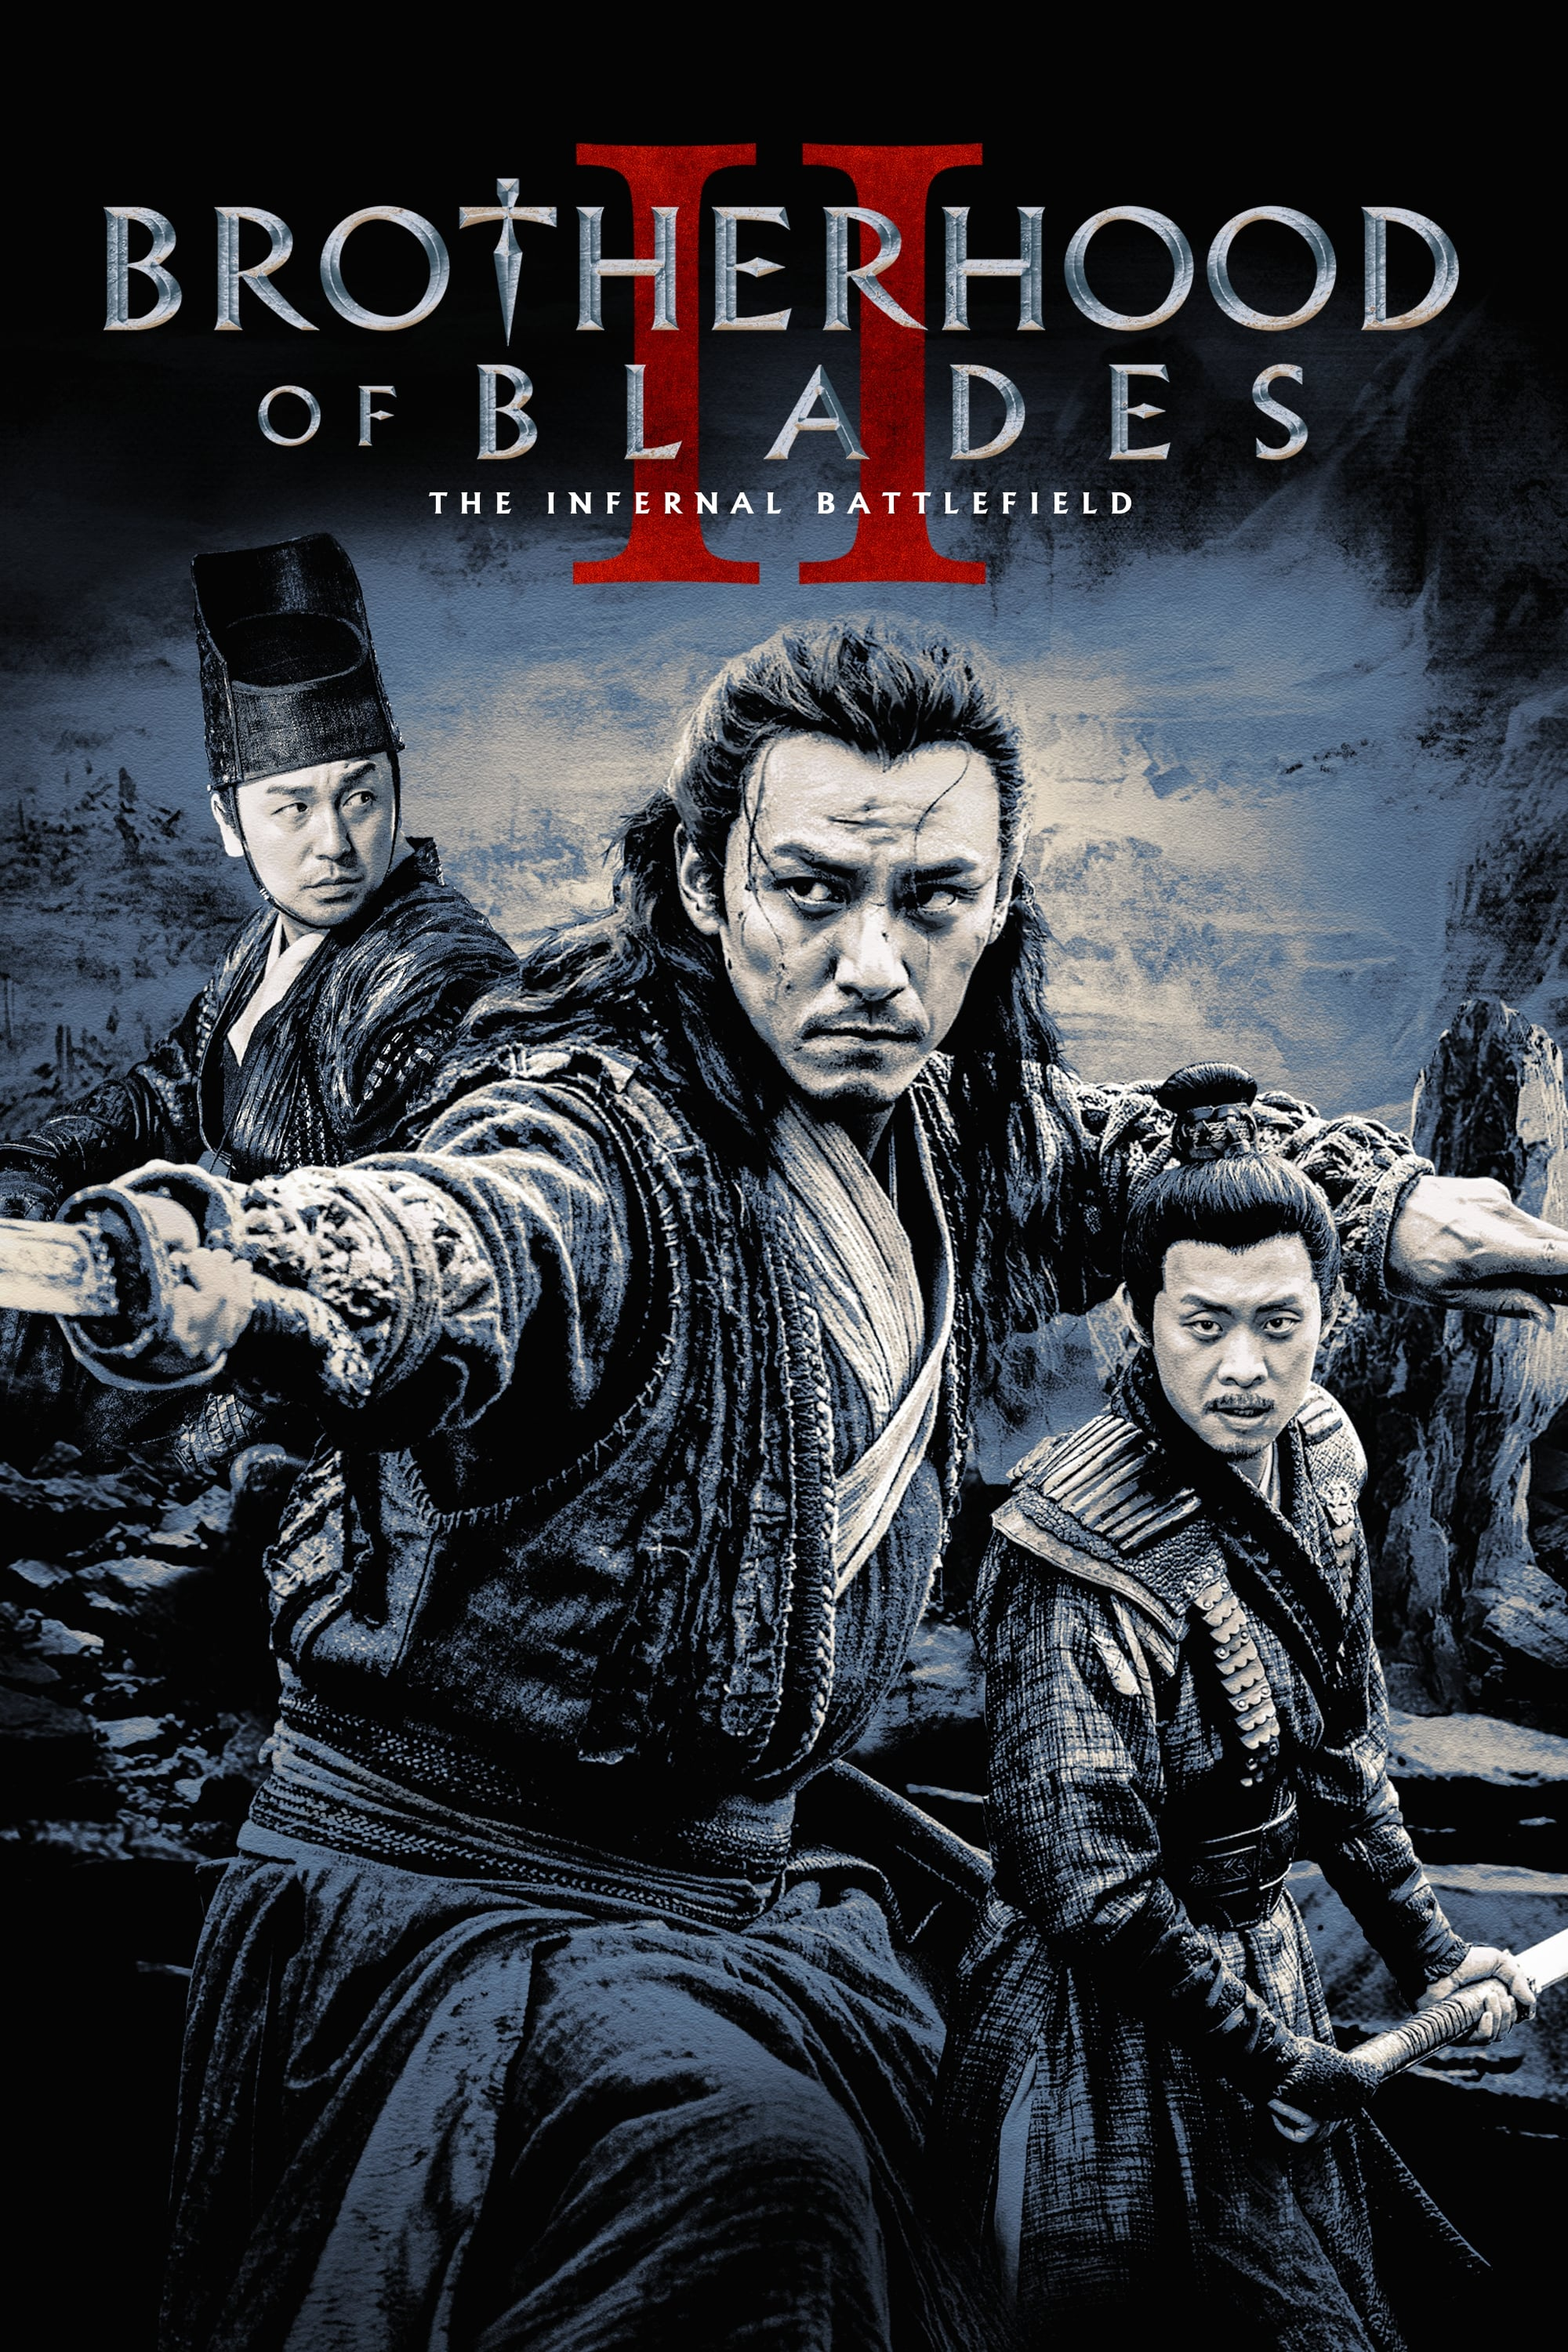 ხმლების საძმო 2 / Brotherhood of Blades II: The Infernal Battlefield (Xiu chun dao II: xiu luo zhan chang)